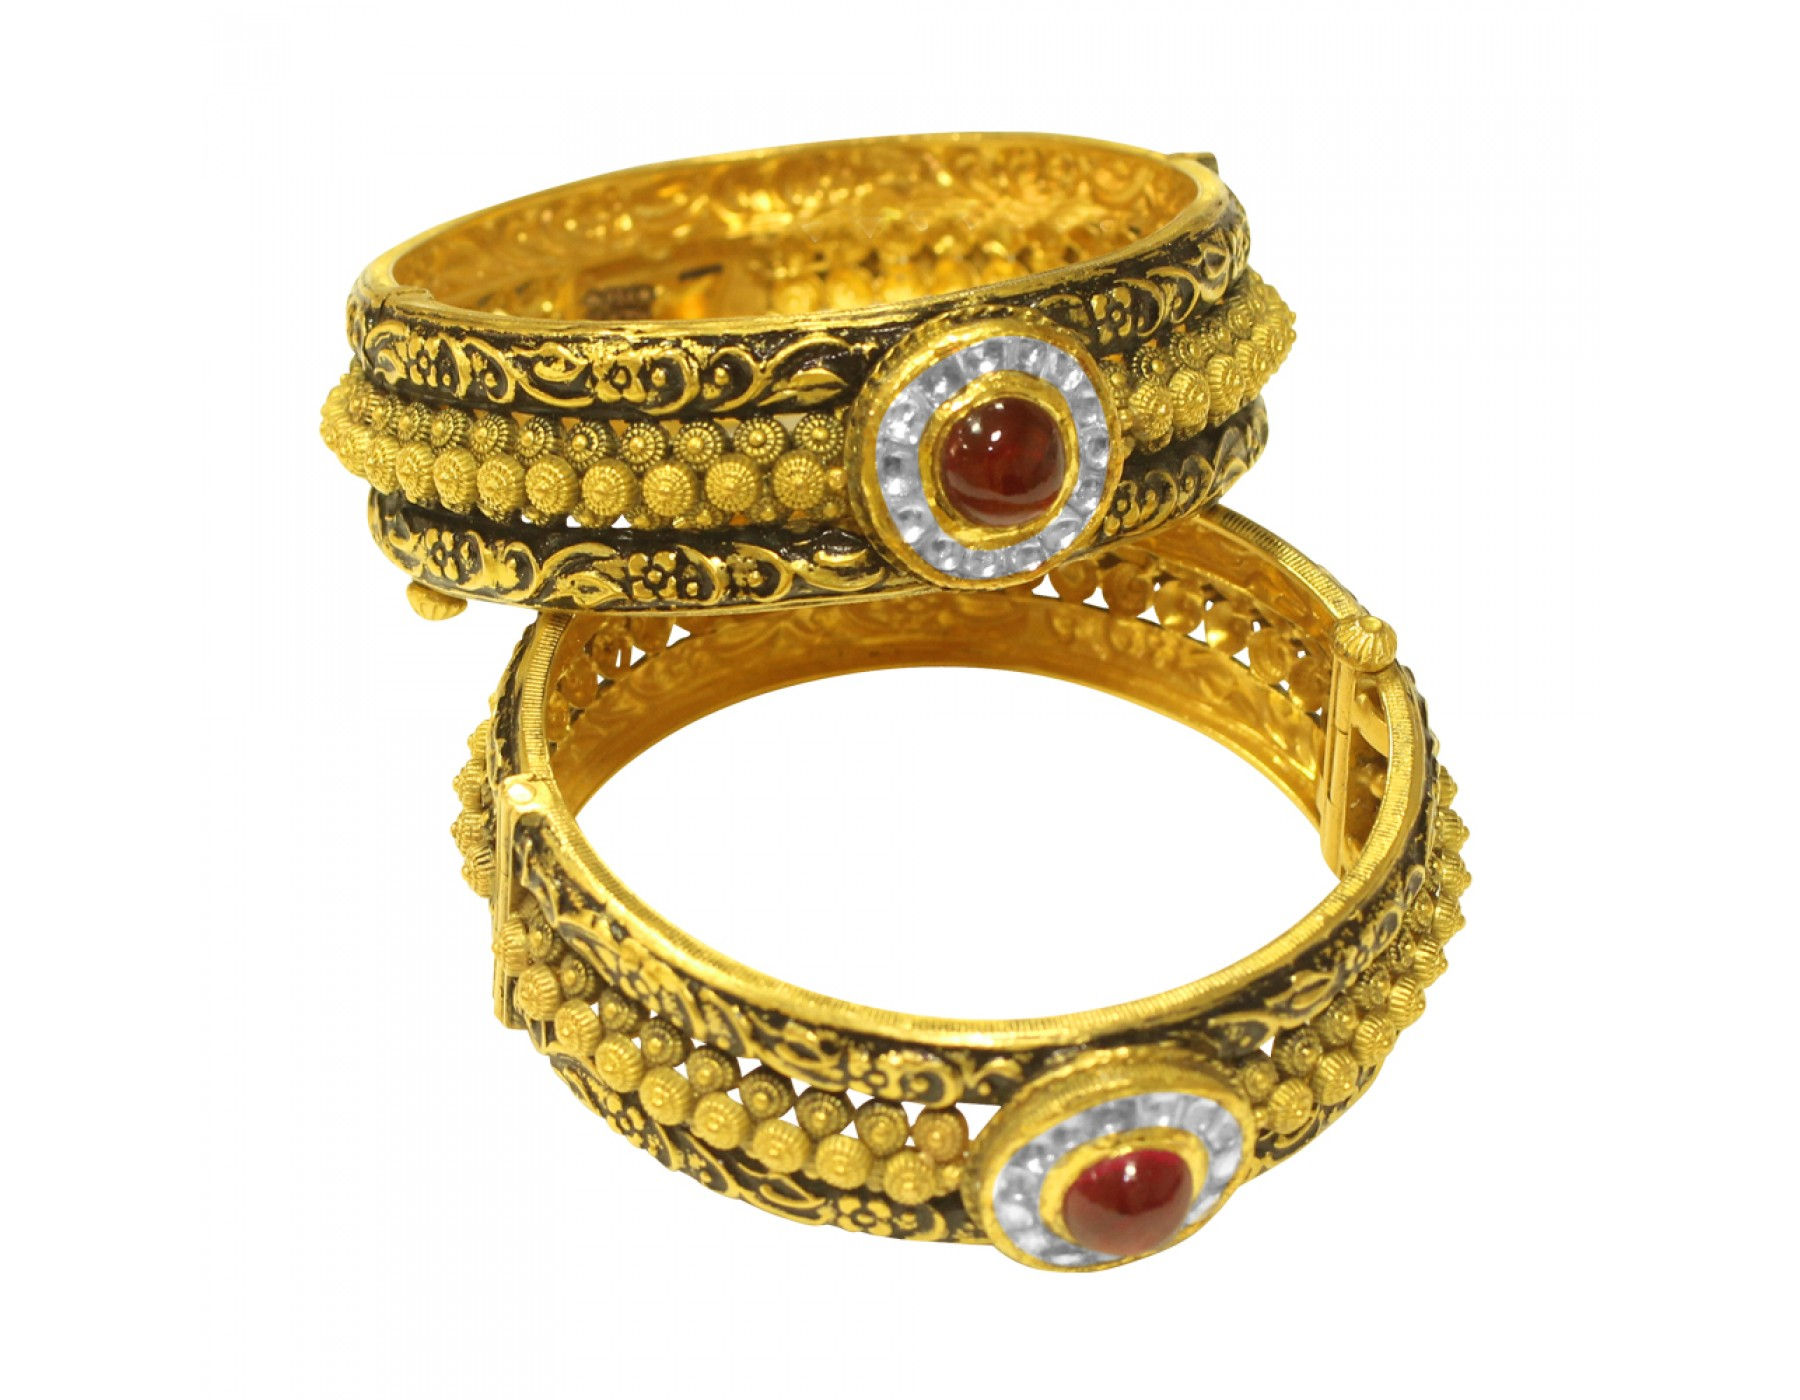 22kt Gold Rings Online India